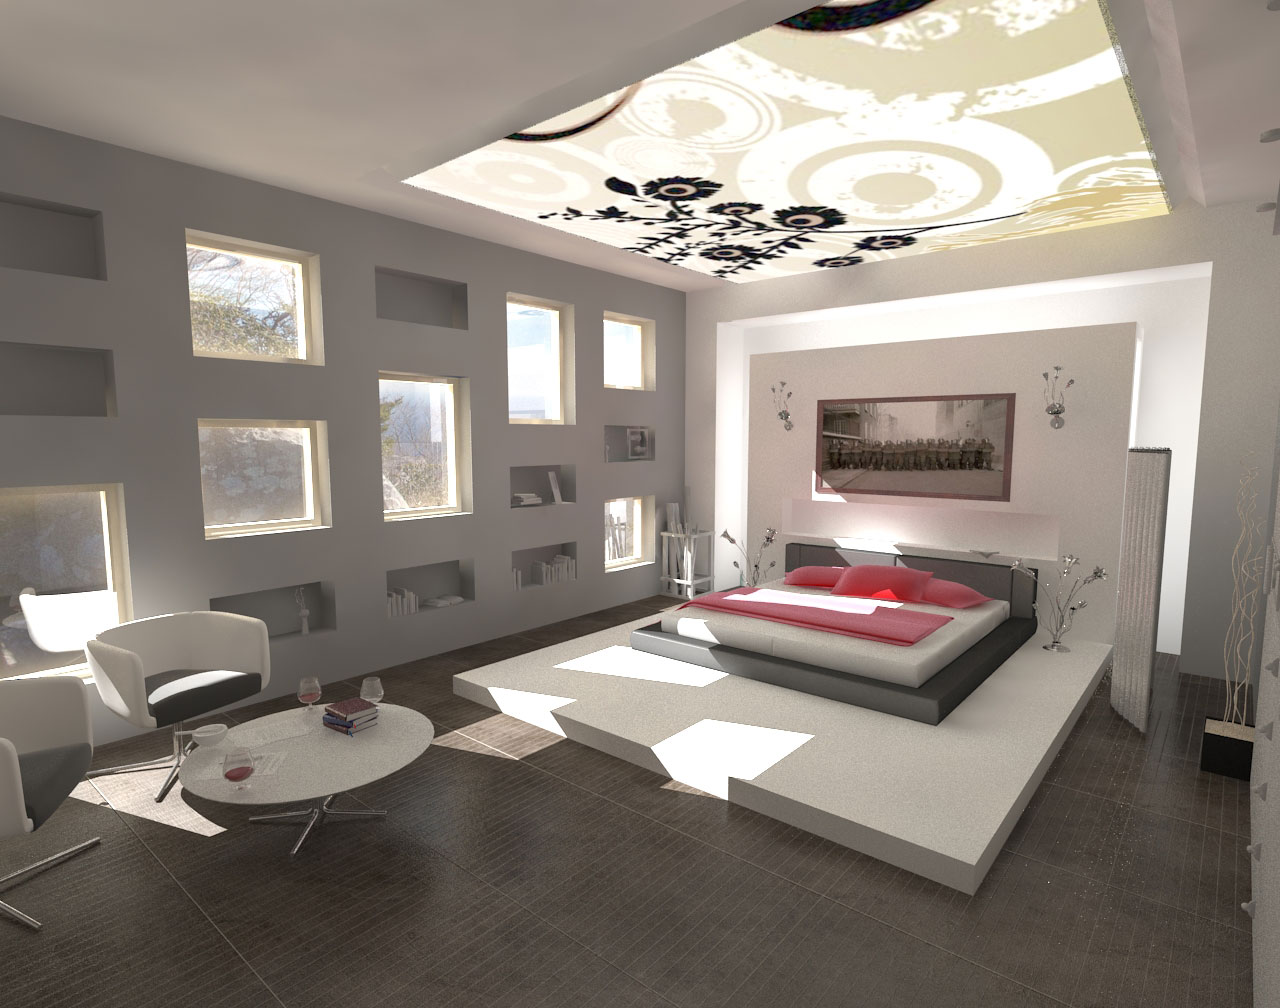 Decorations Minimalist Design Modern Bedroom Interior For Minimalist Interior  Design Tips